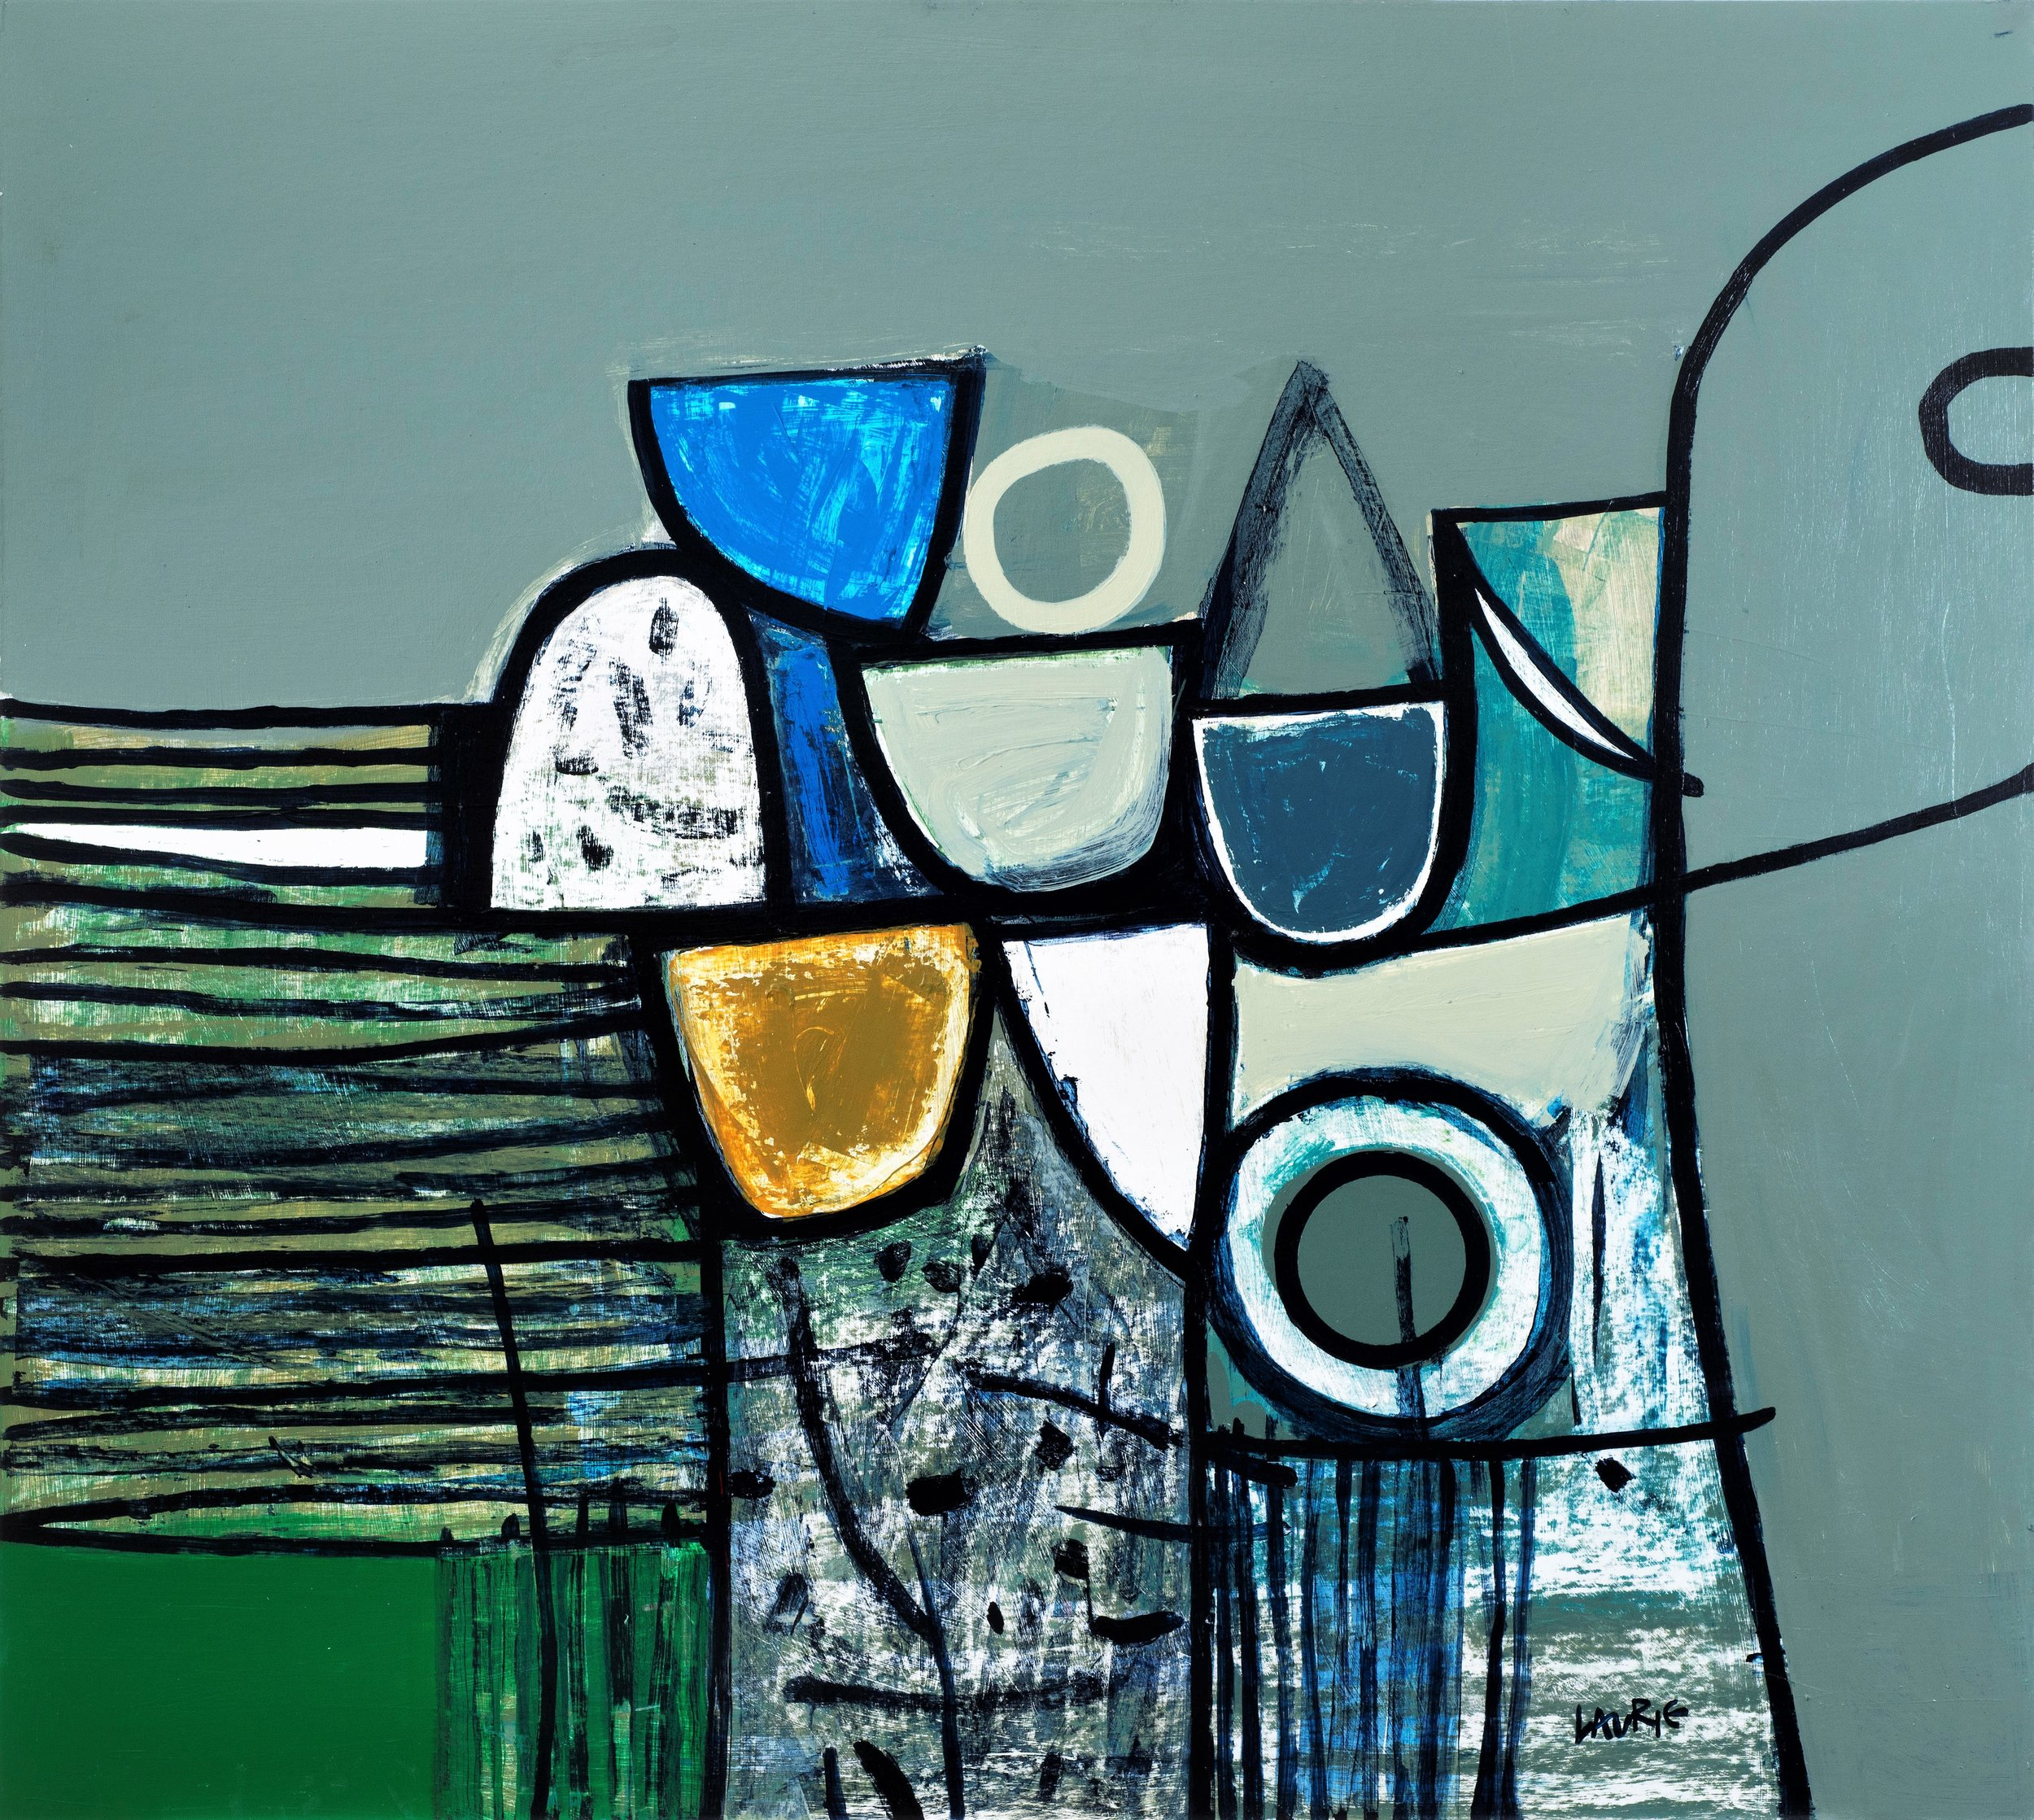 Artist: Simon Laurie  Title: Sea Defence  Size: 81 x 91 cm  Medium: Acrylic on board  Price: £4800   Buy Now